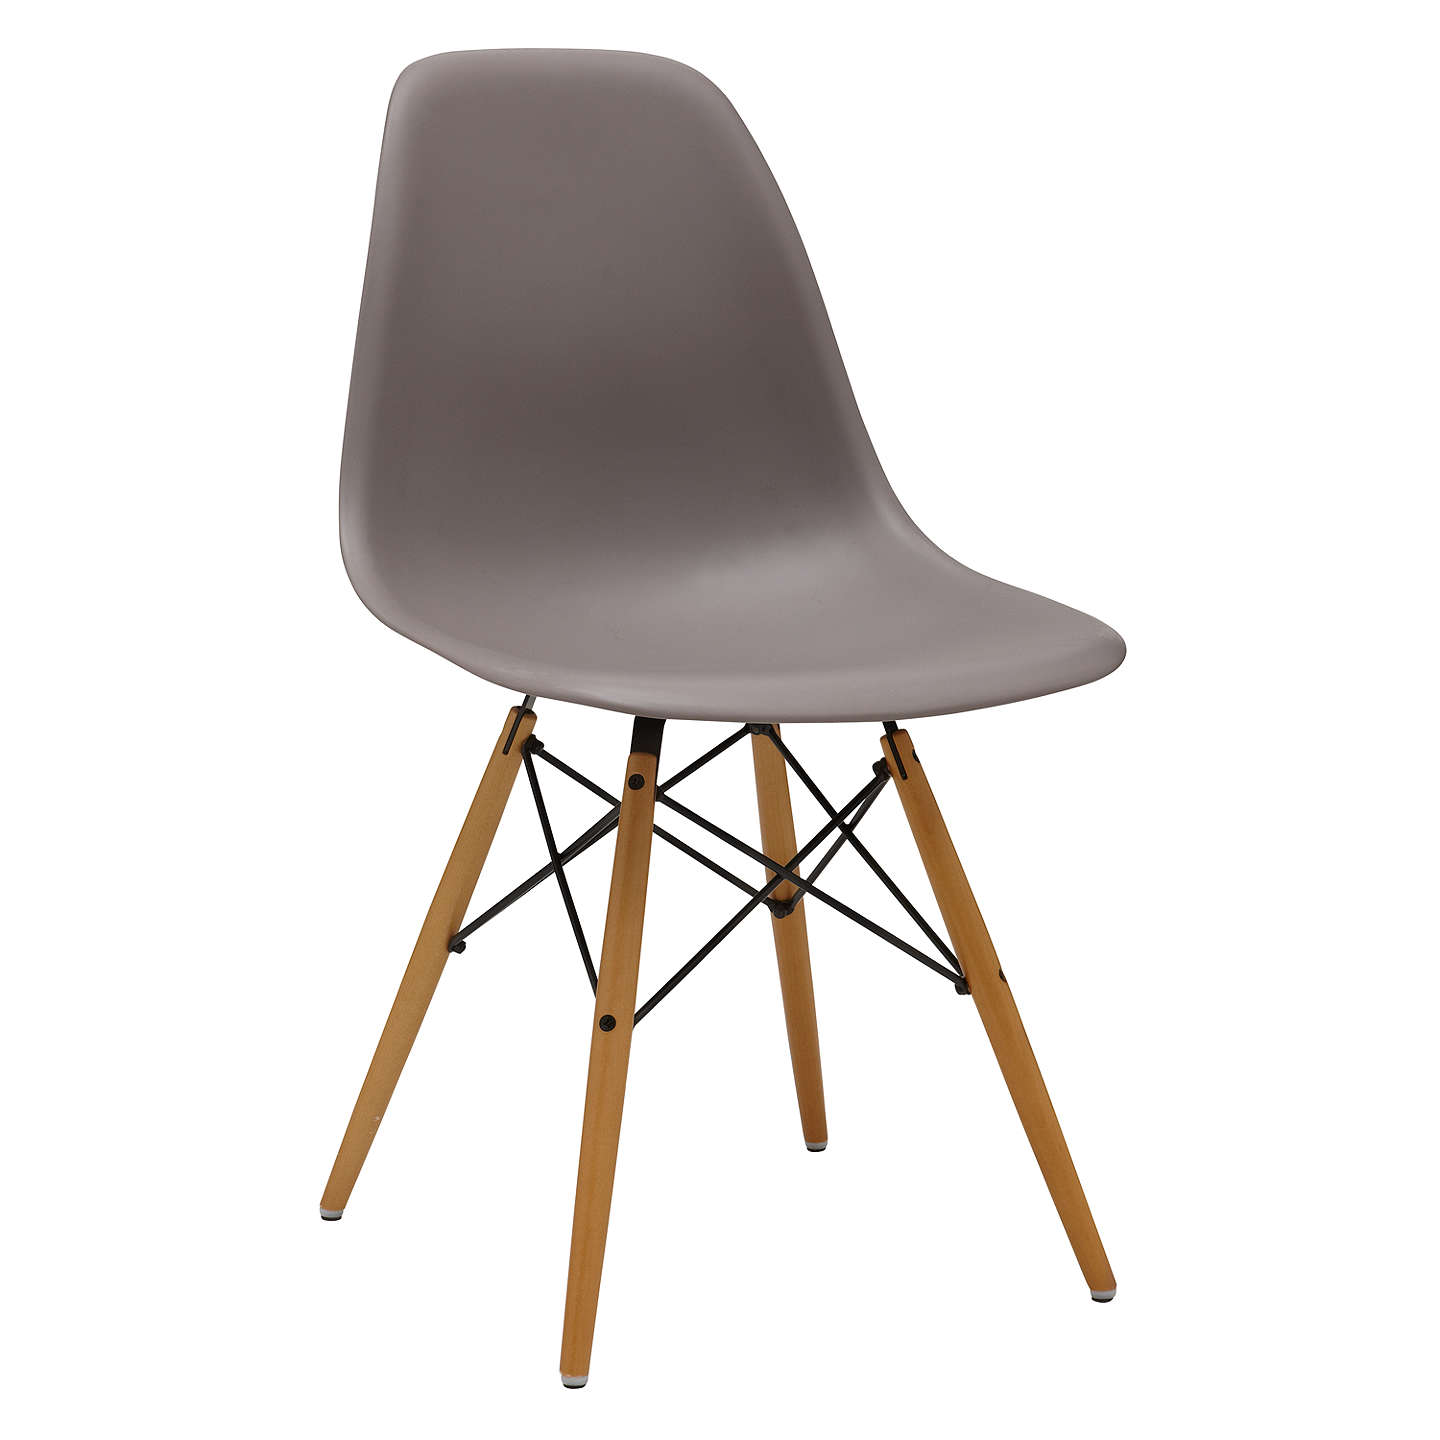 BuyVitra Eames DSW Side Chair, Mauve Grey Online at johnlewis.com